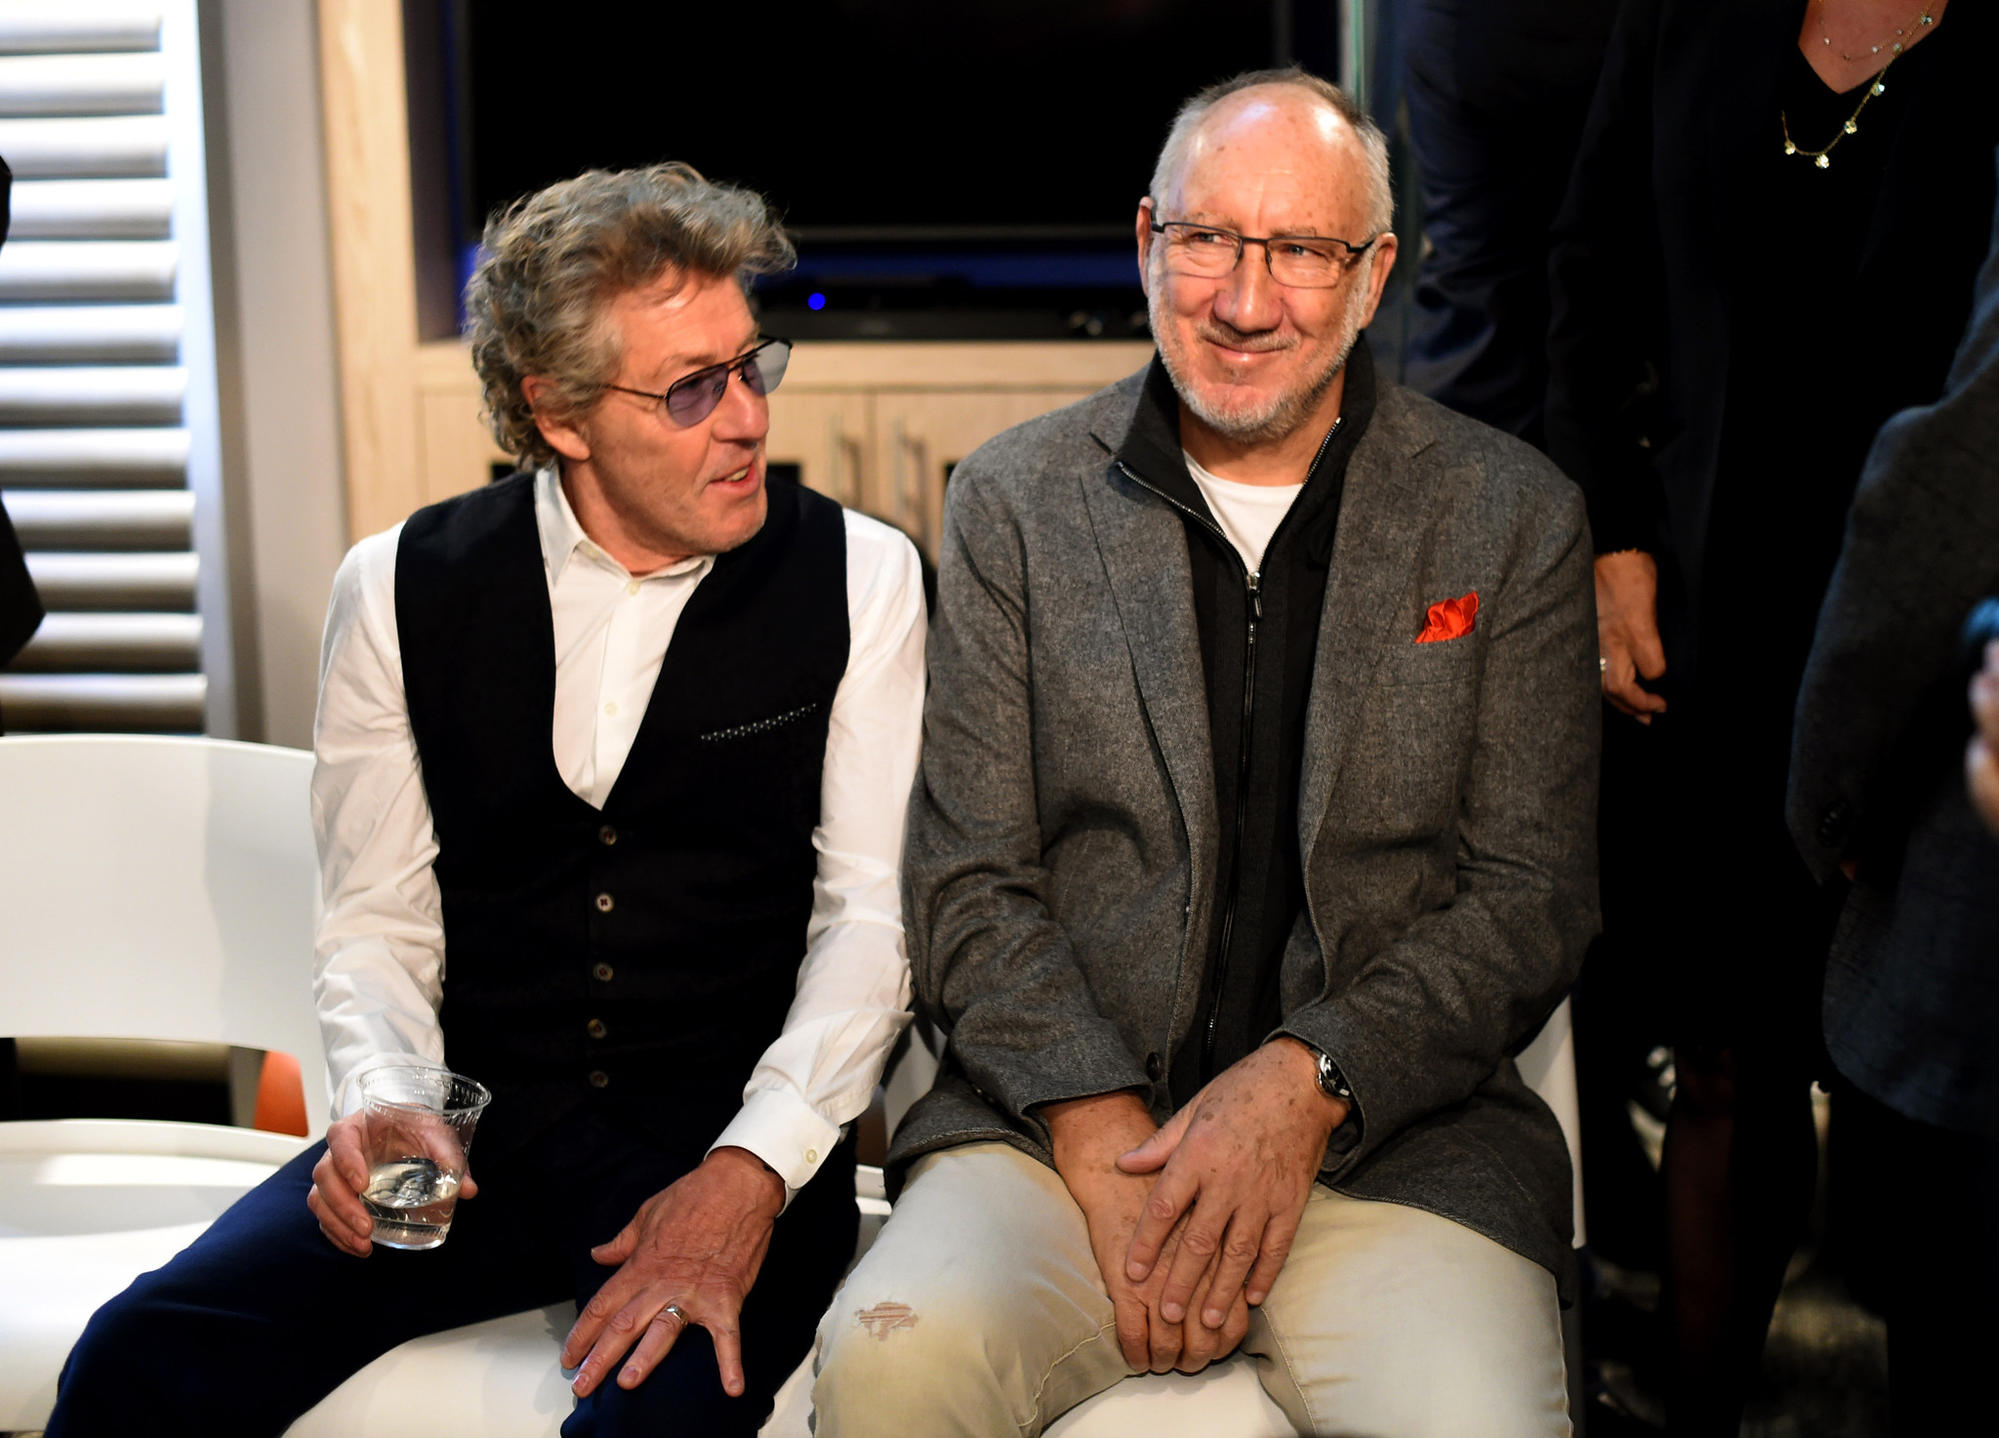 The Who's Roger Daltrey, left, and Pete Townshend.